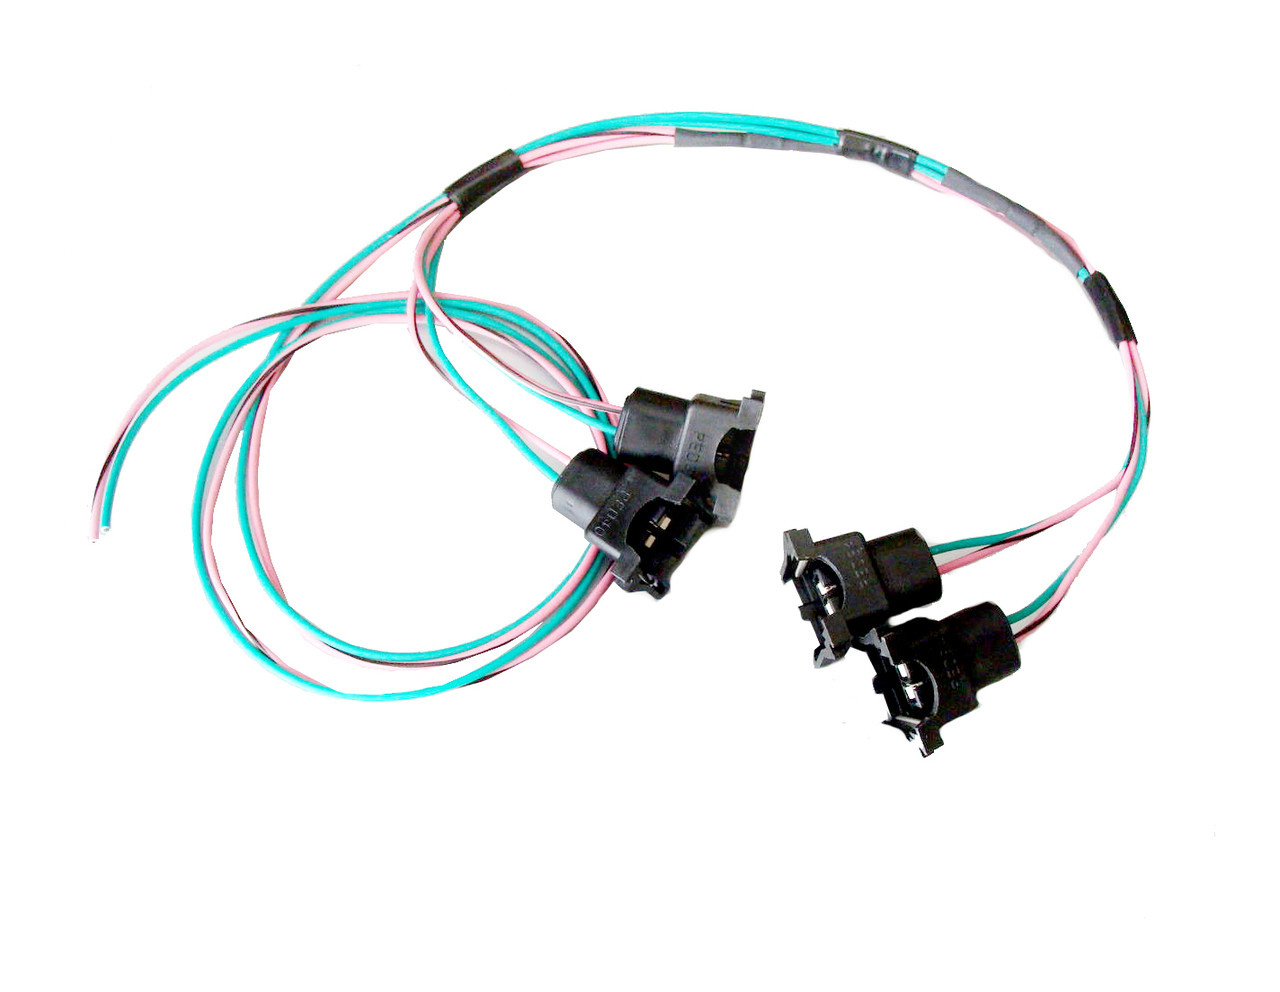 connector wiring harness assembly lh image 1 [ 1280 x 992 Pixel ]